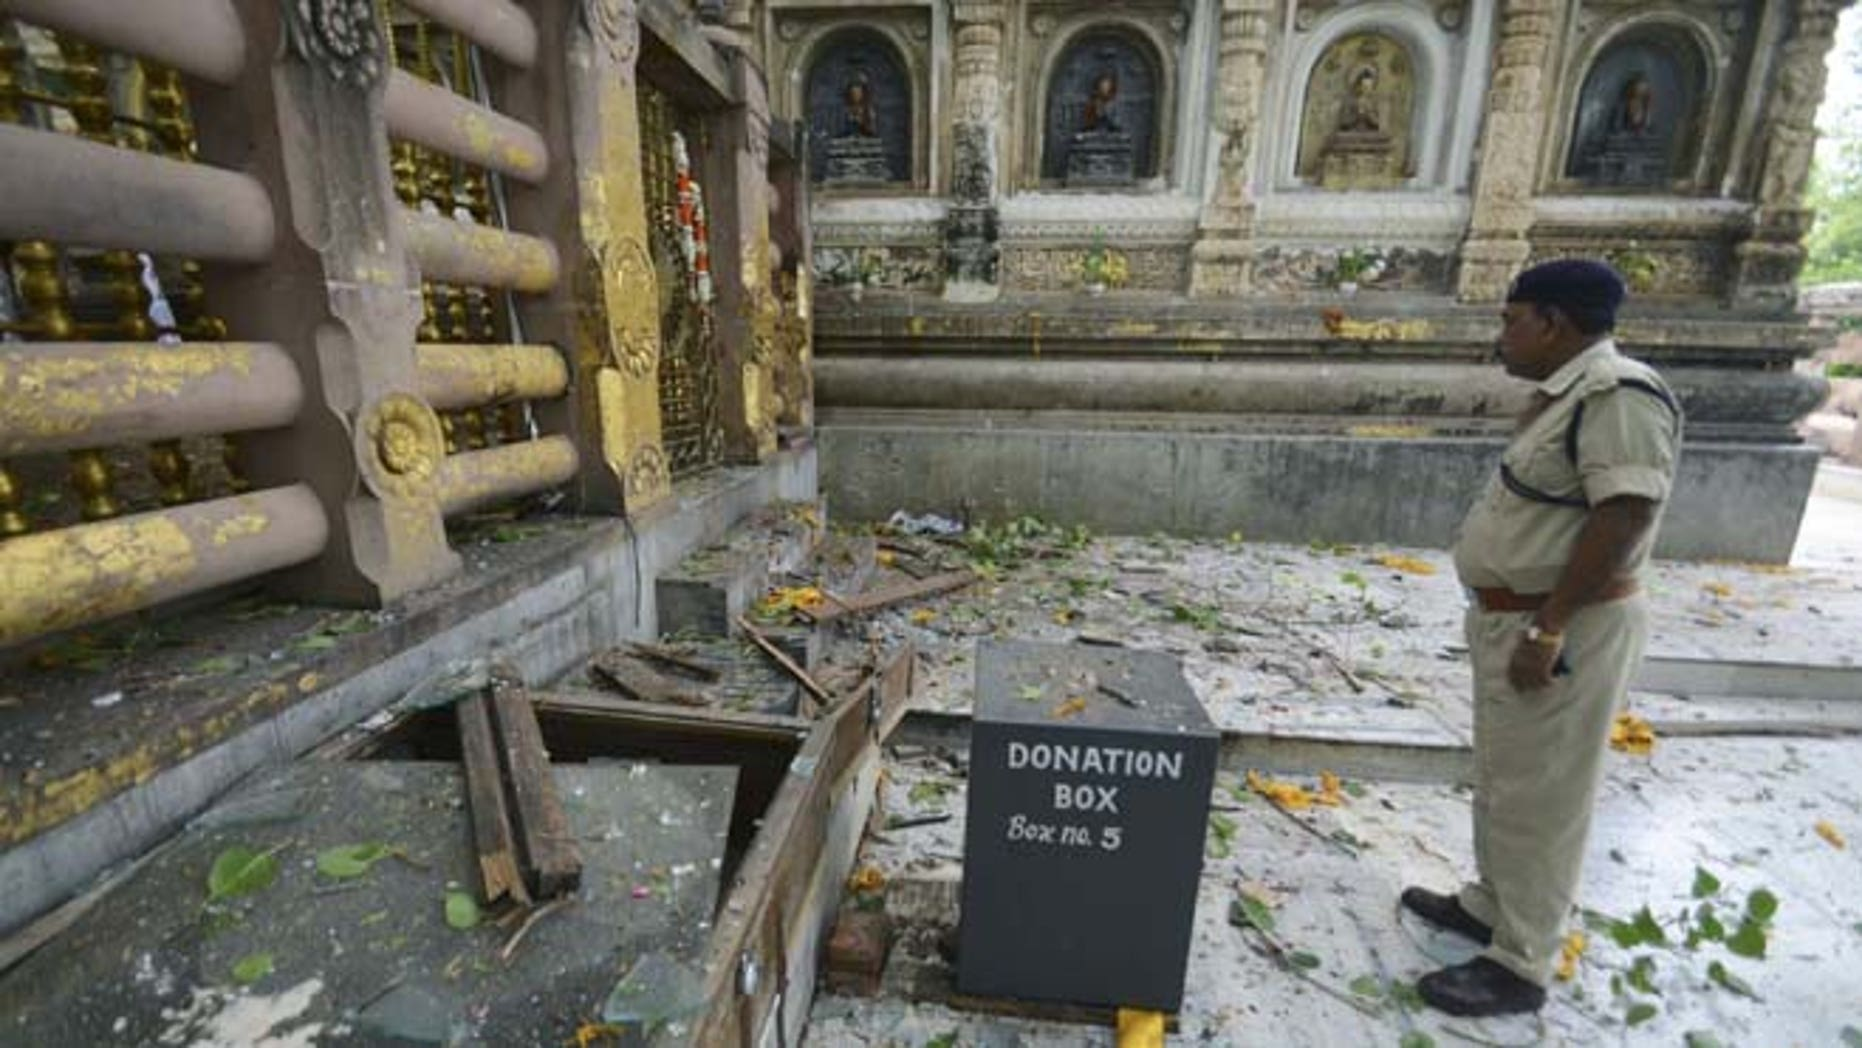 July 7, 2013: A security officer inspects the site of an explosion on the campus of the Mahabodhi Temple, the Buddhist Great Awakening temple, in Bodhgaya, about 130 kilometers (80 miles) south of Patna, the capital of the eastern Indian state of Bihar. A series of small blasts hit three Buddhist temples in eastern India early Sunday, injuring at least two people, police said.